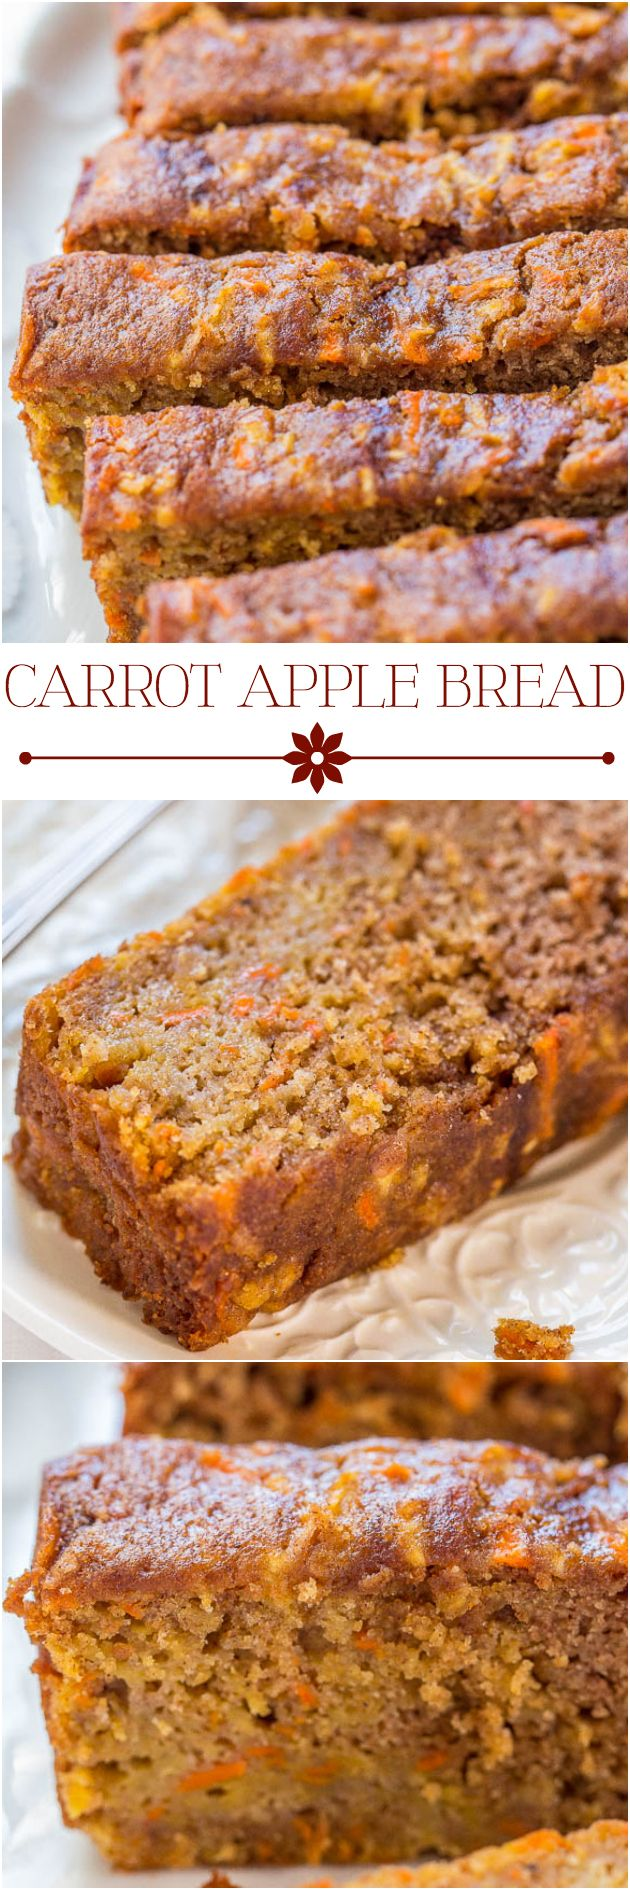 Carrot Apple Bread - Carrot cake with apples added and baked as a bread so it's healthier!